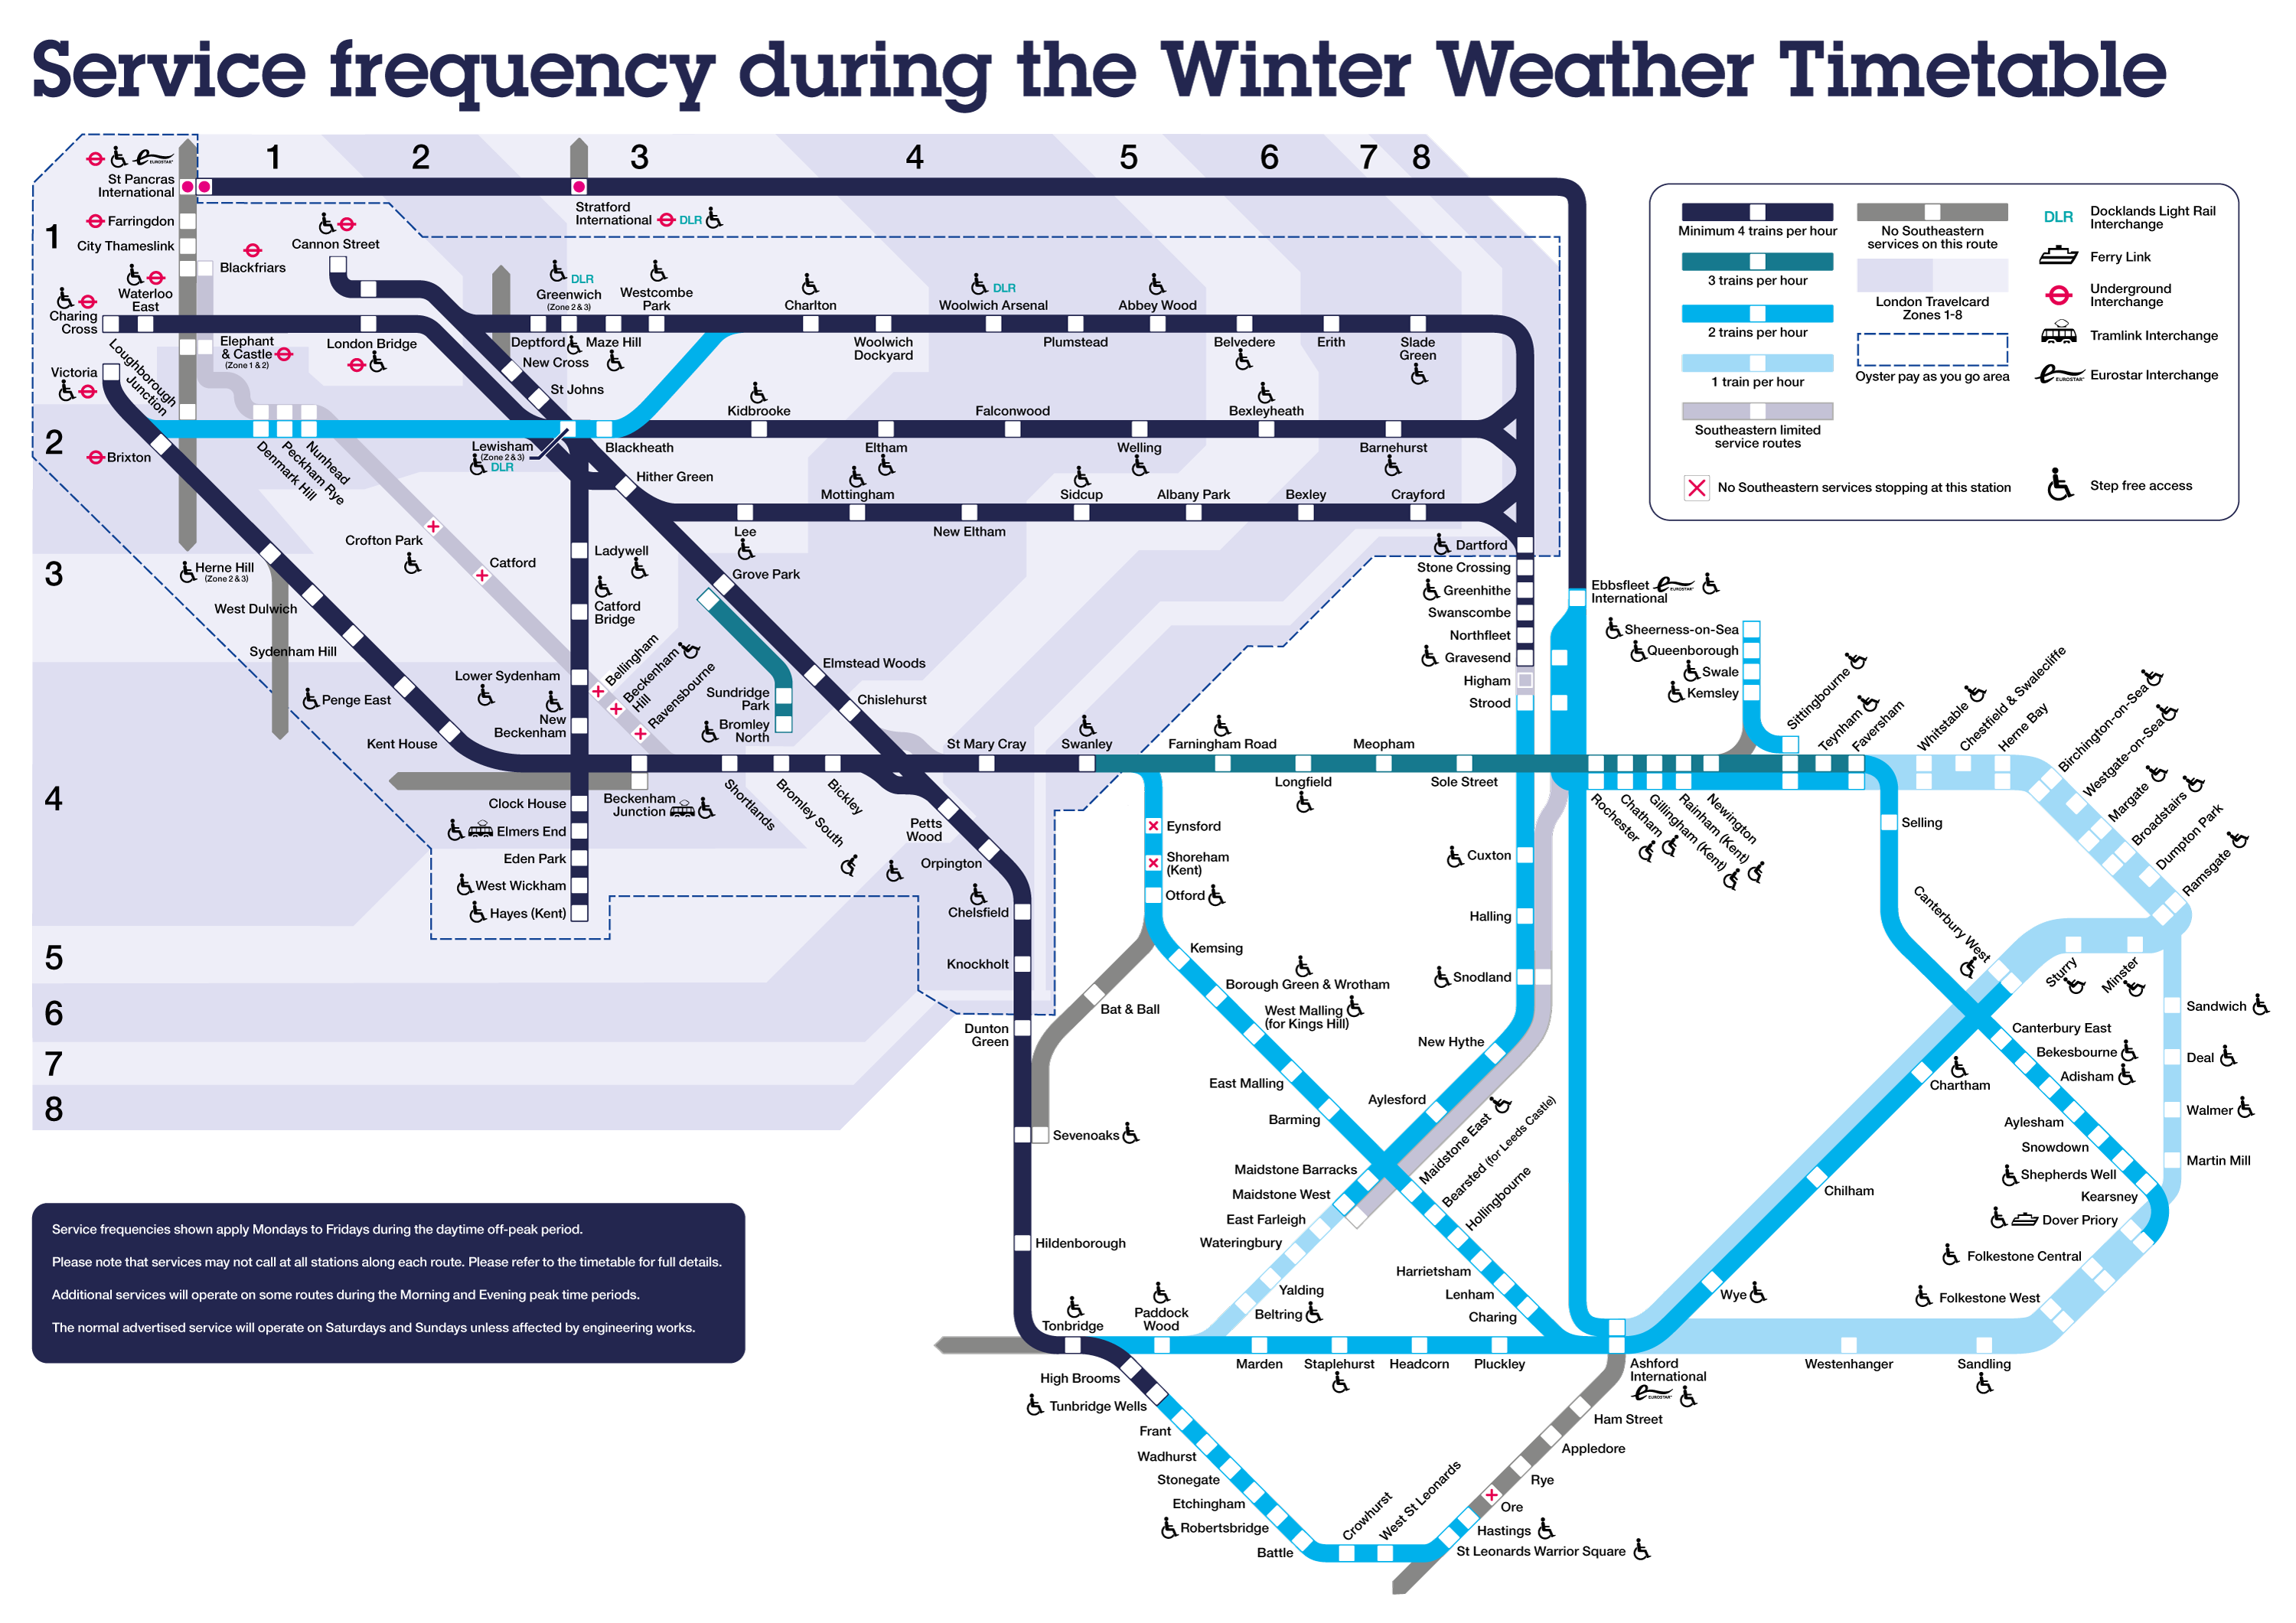 Service frequency during the Winter Weather Timetable